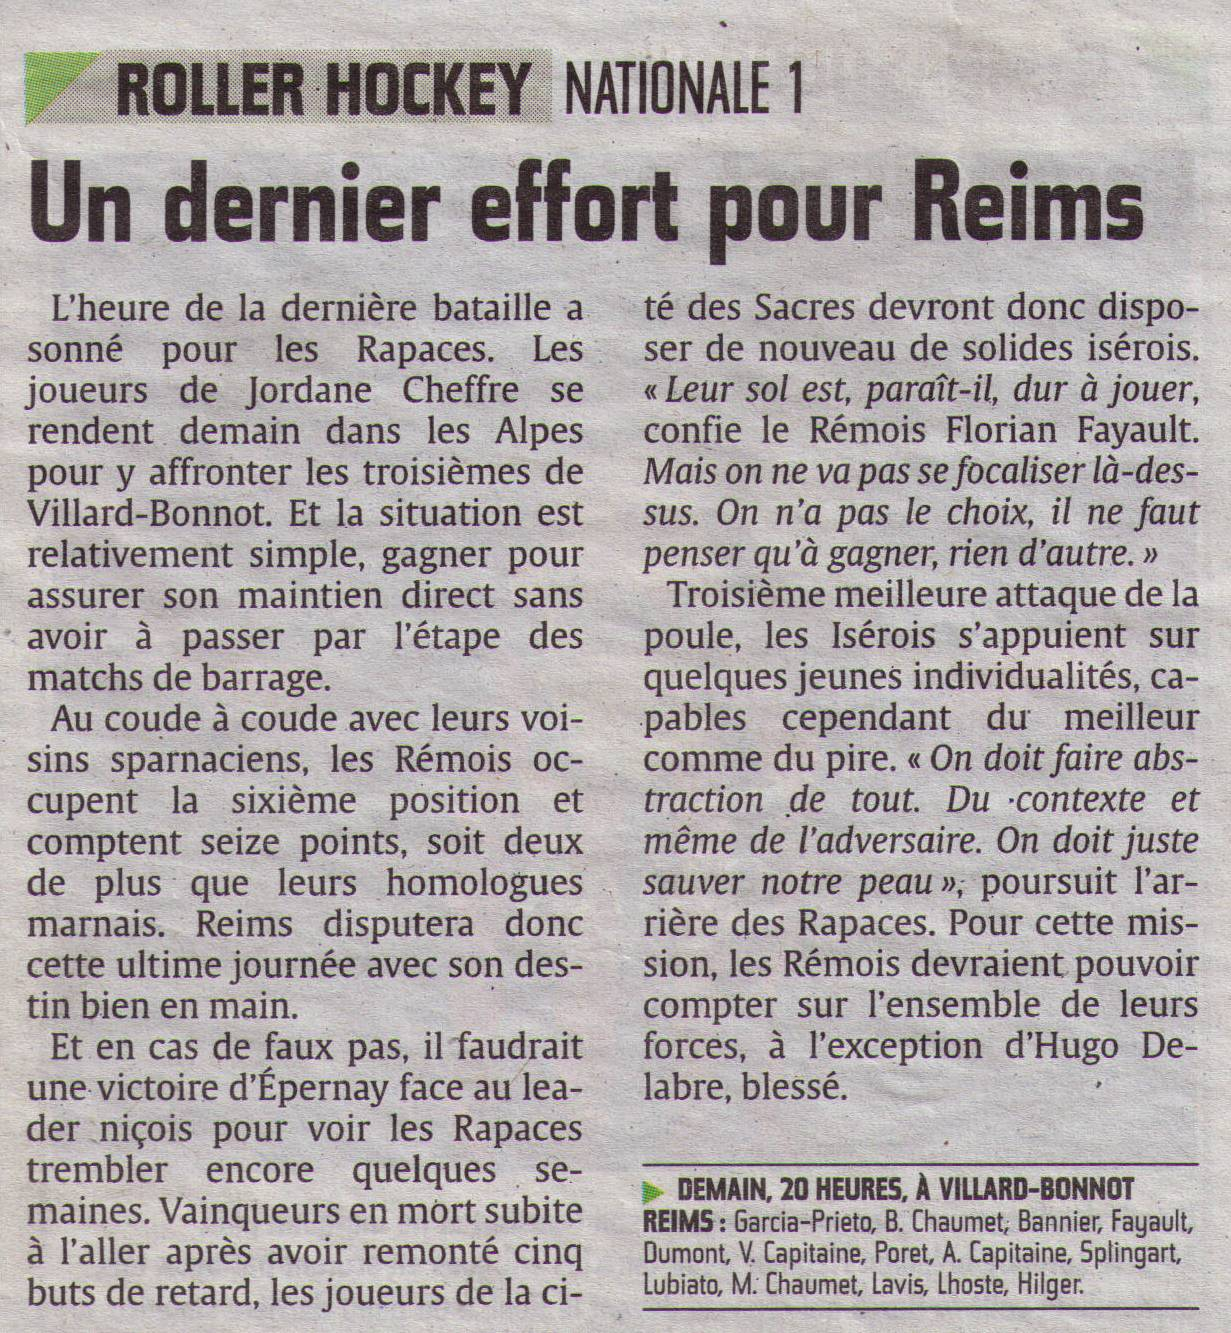 2014-03-28 - N1 VILLARD-BONNOT vs RHR